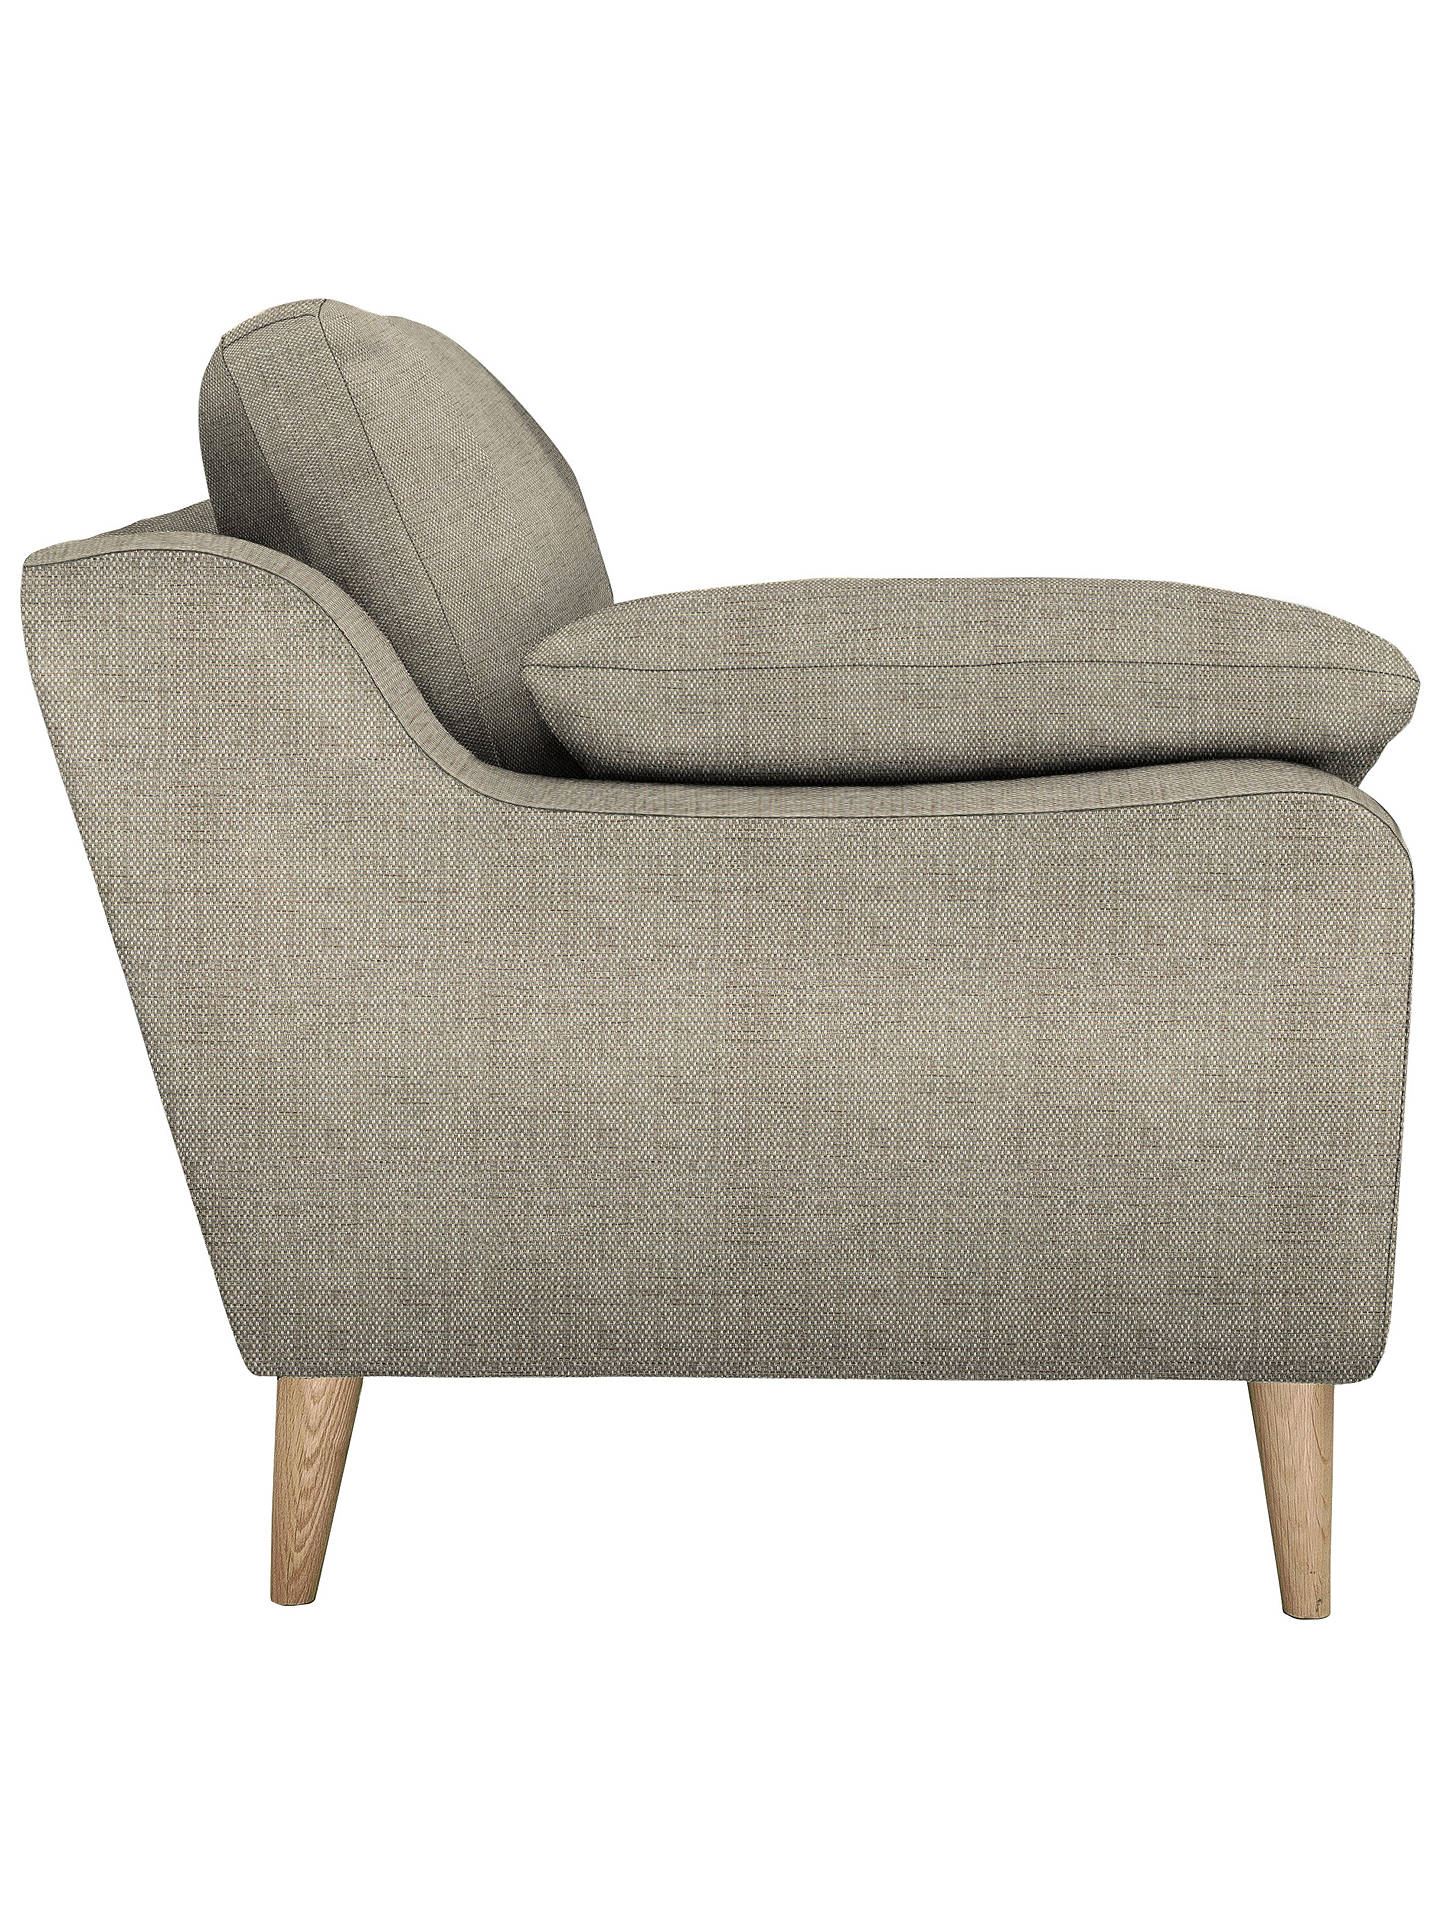 Buyercol for John Lewis Salento 4 Seater Sofa, Maria Oyster Online at johnlewis.com